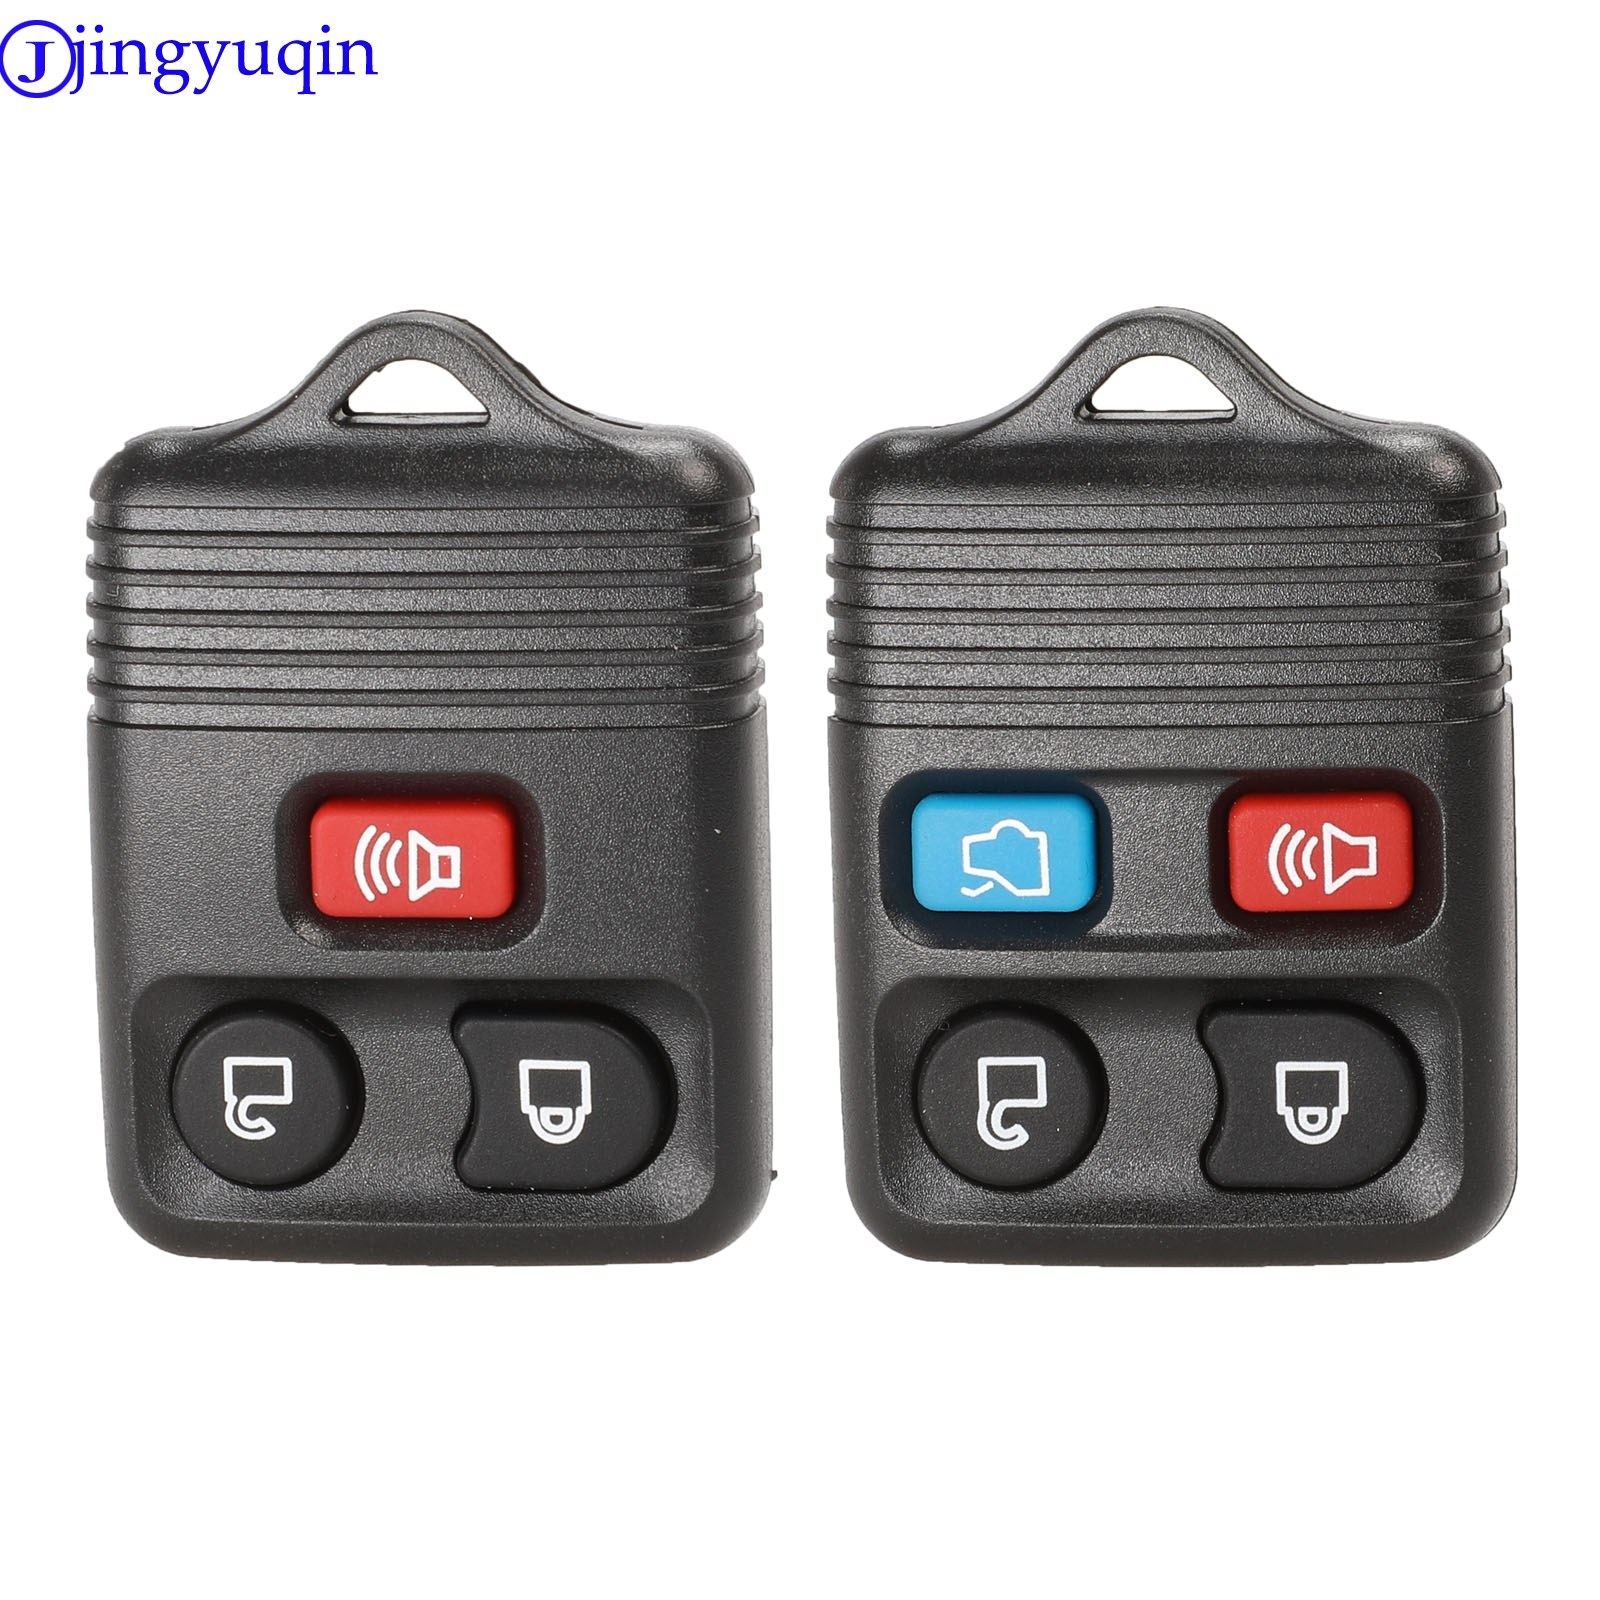 jingyuqin 3/4 Buttons Remote Key Shell Case Fob Cover For Ford Mustang Focus Lincoln LS Town Car Mercury Grand Marquis Sable